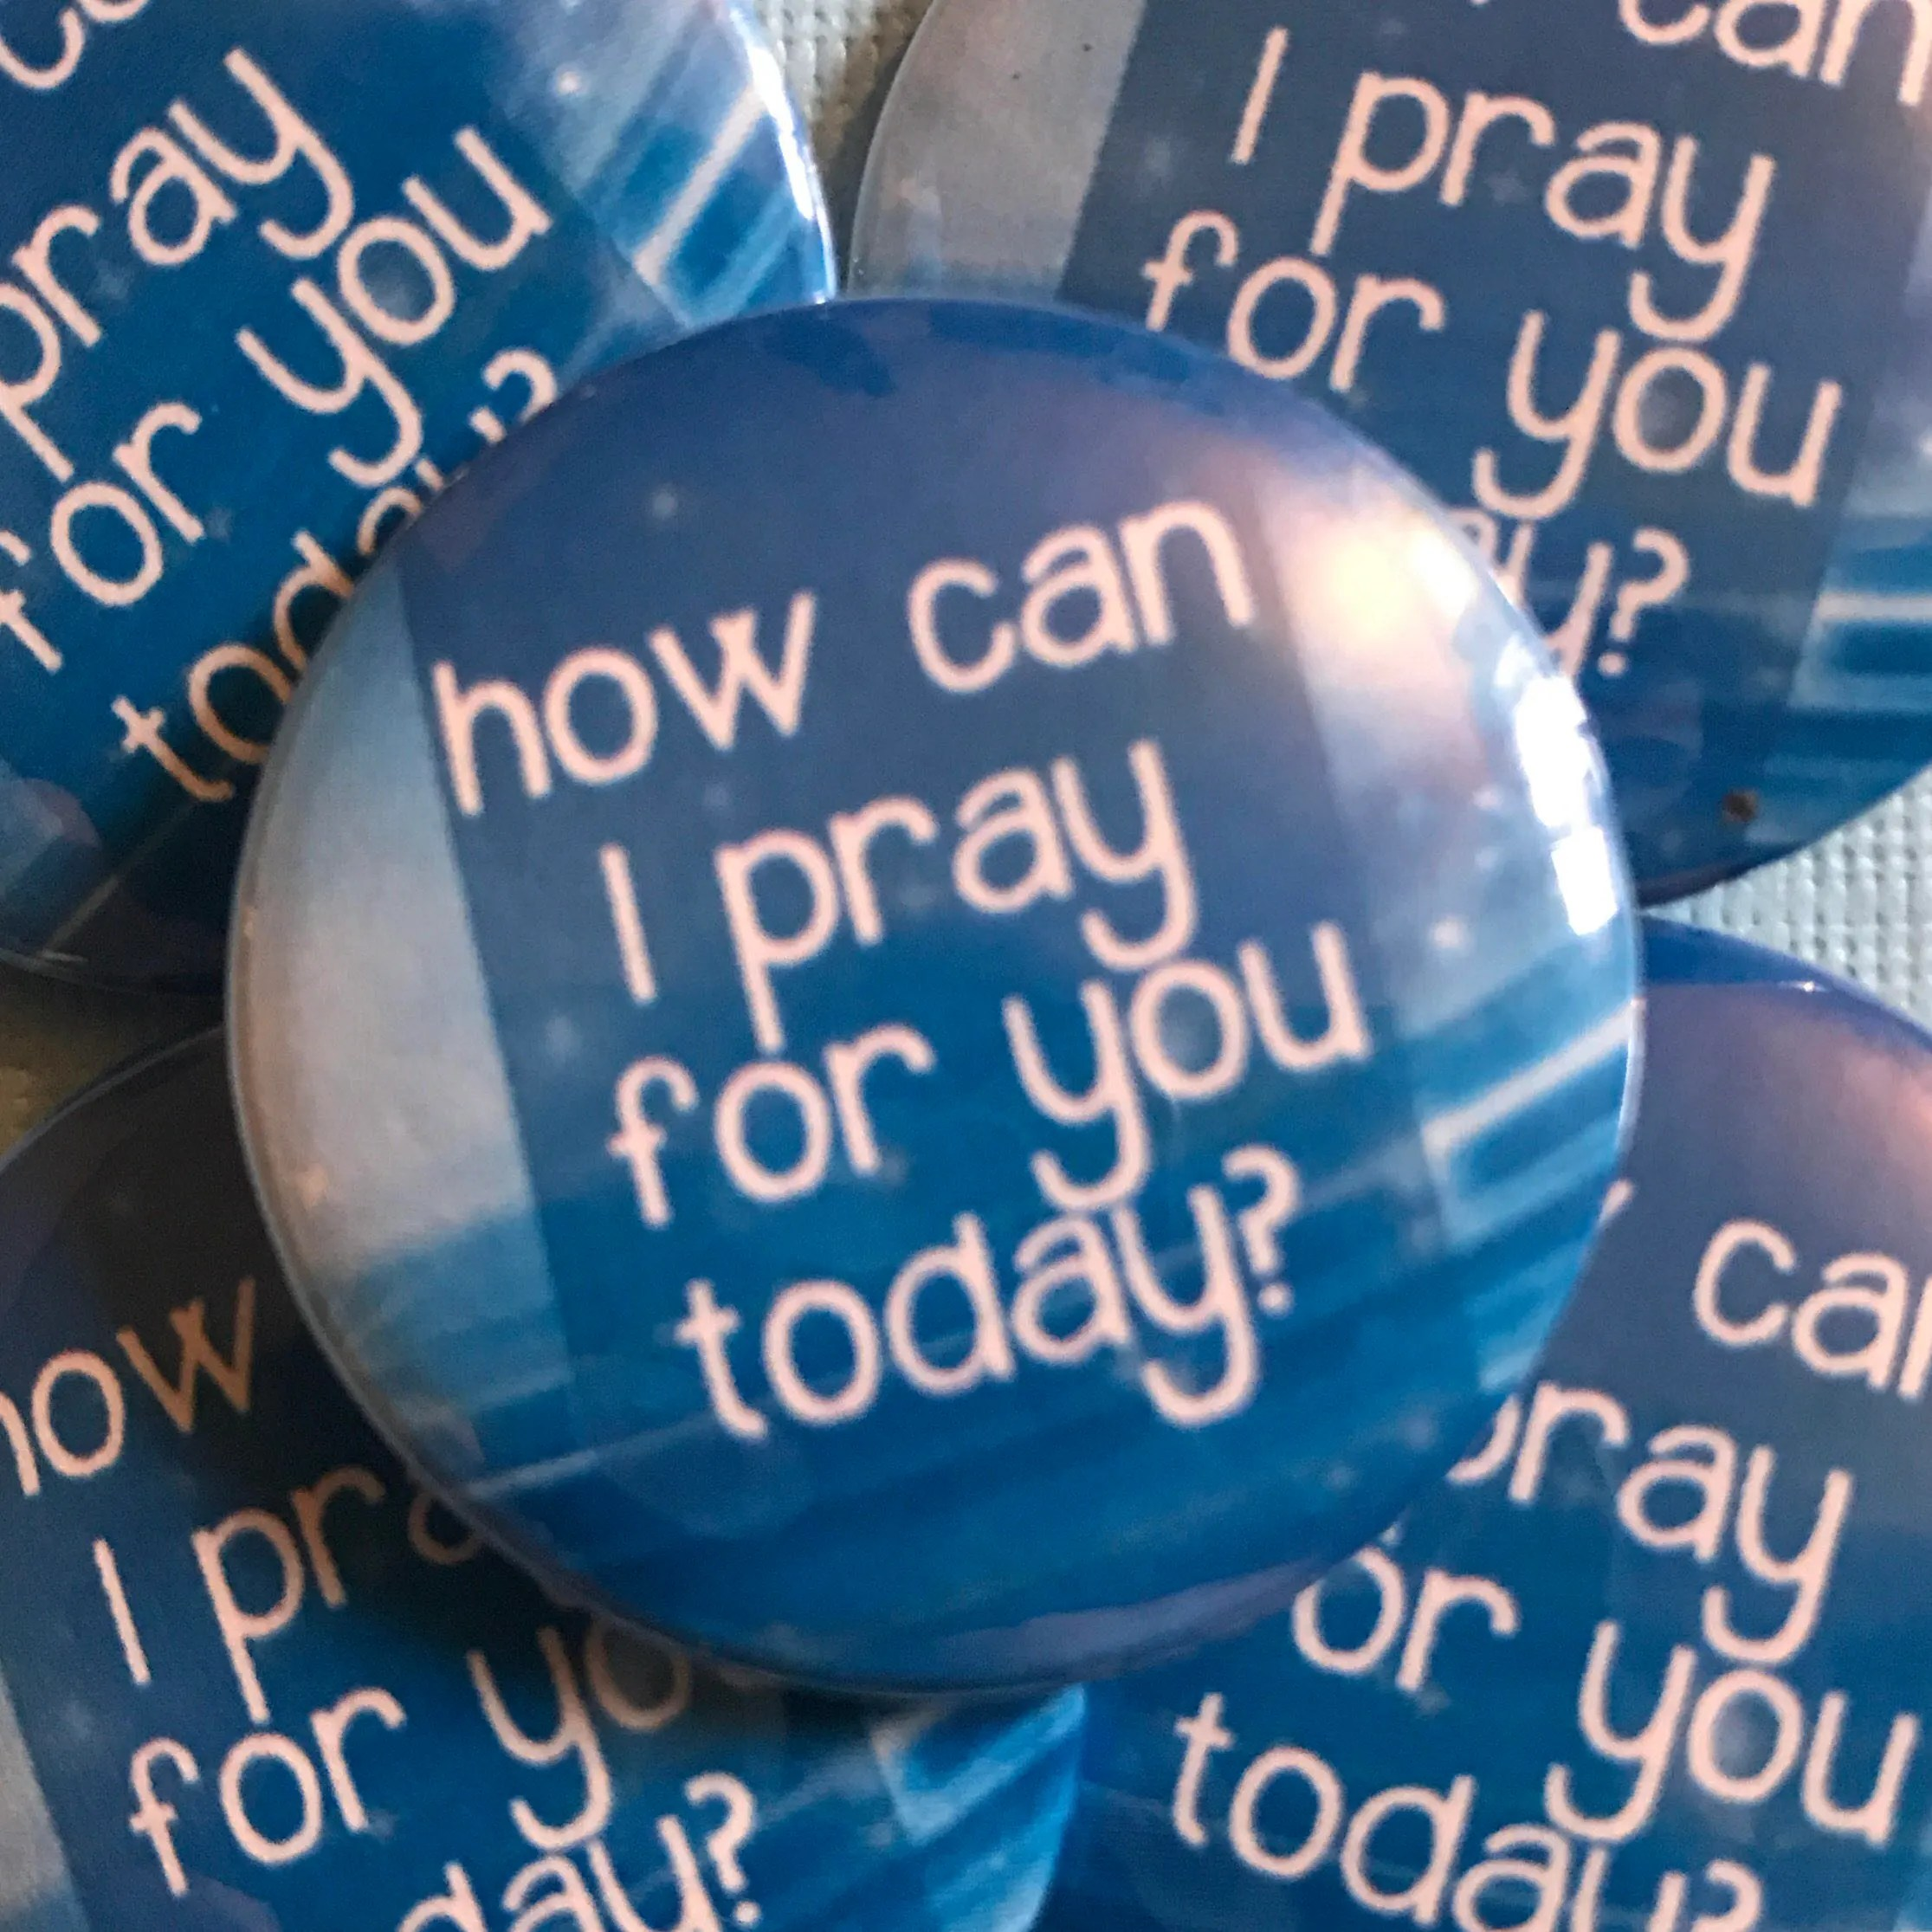 How Can I Pray For You Today Christian Button Christian